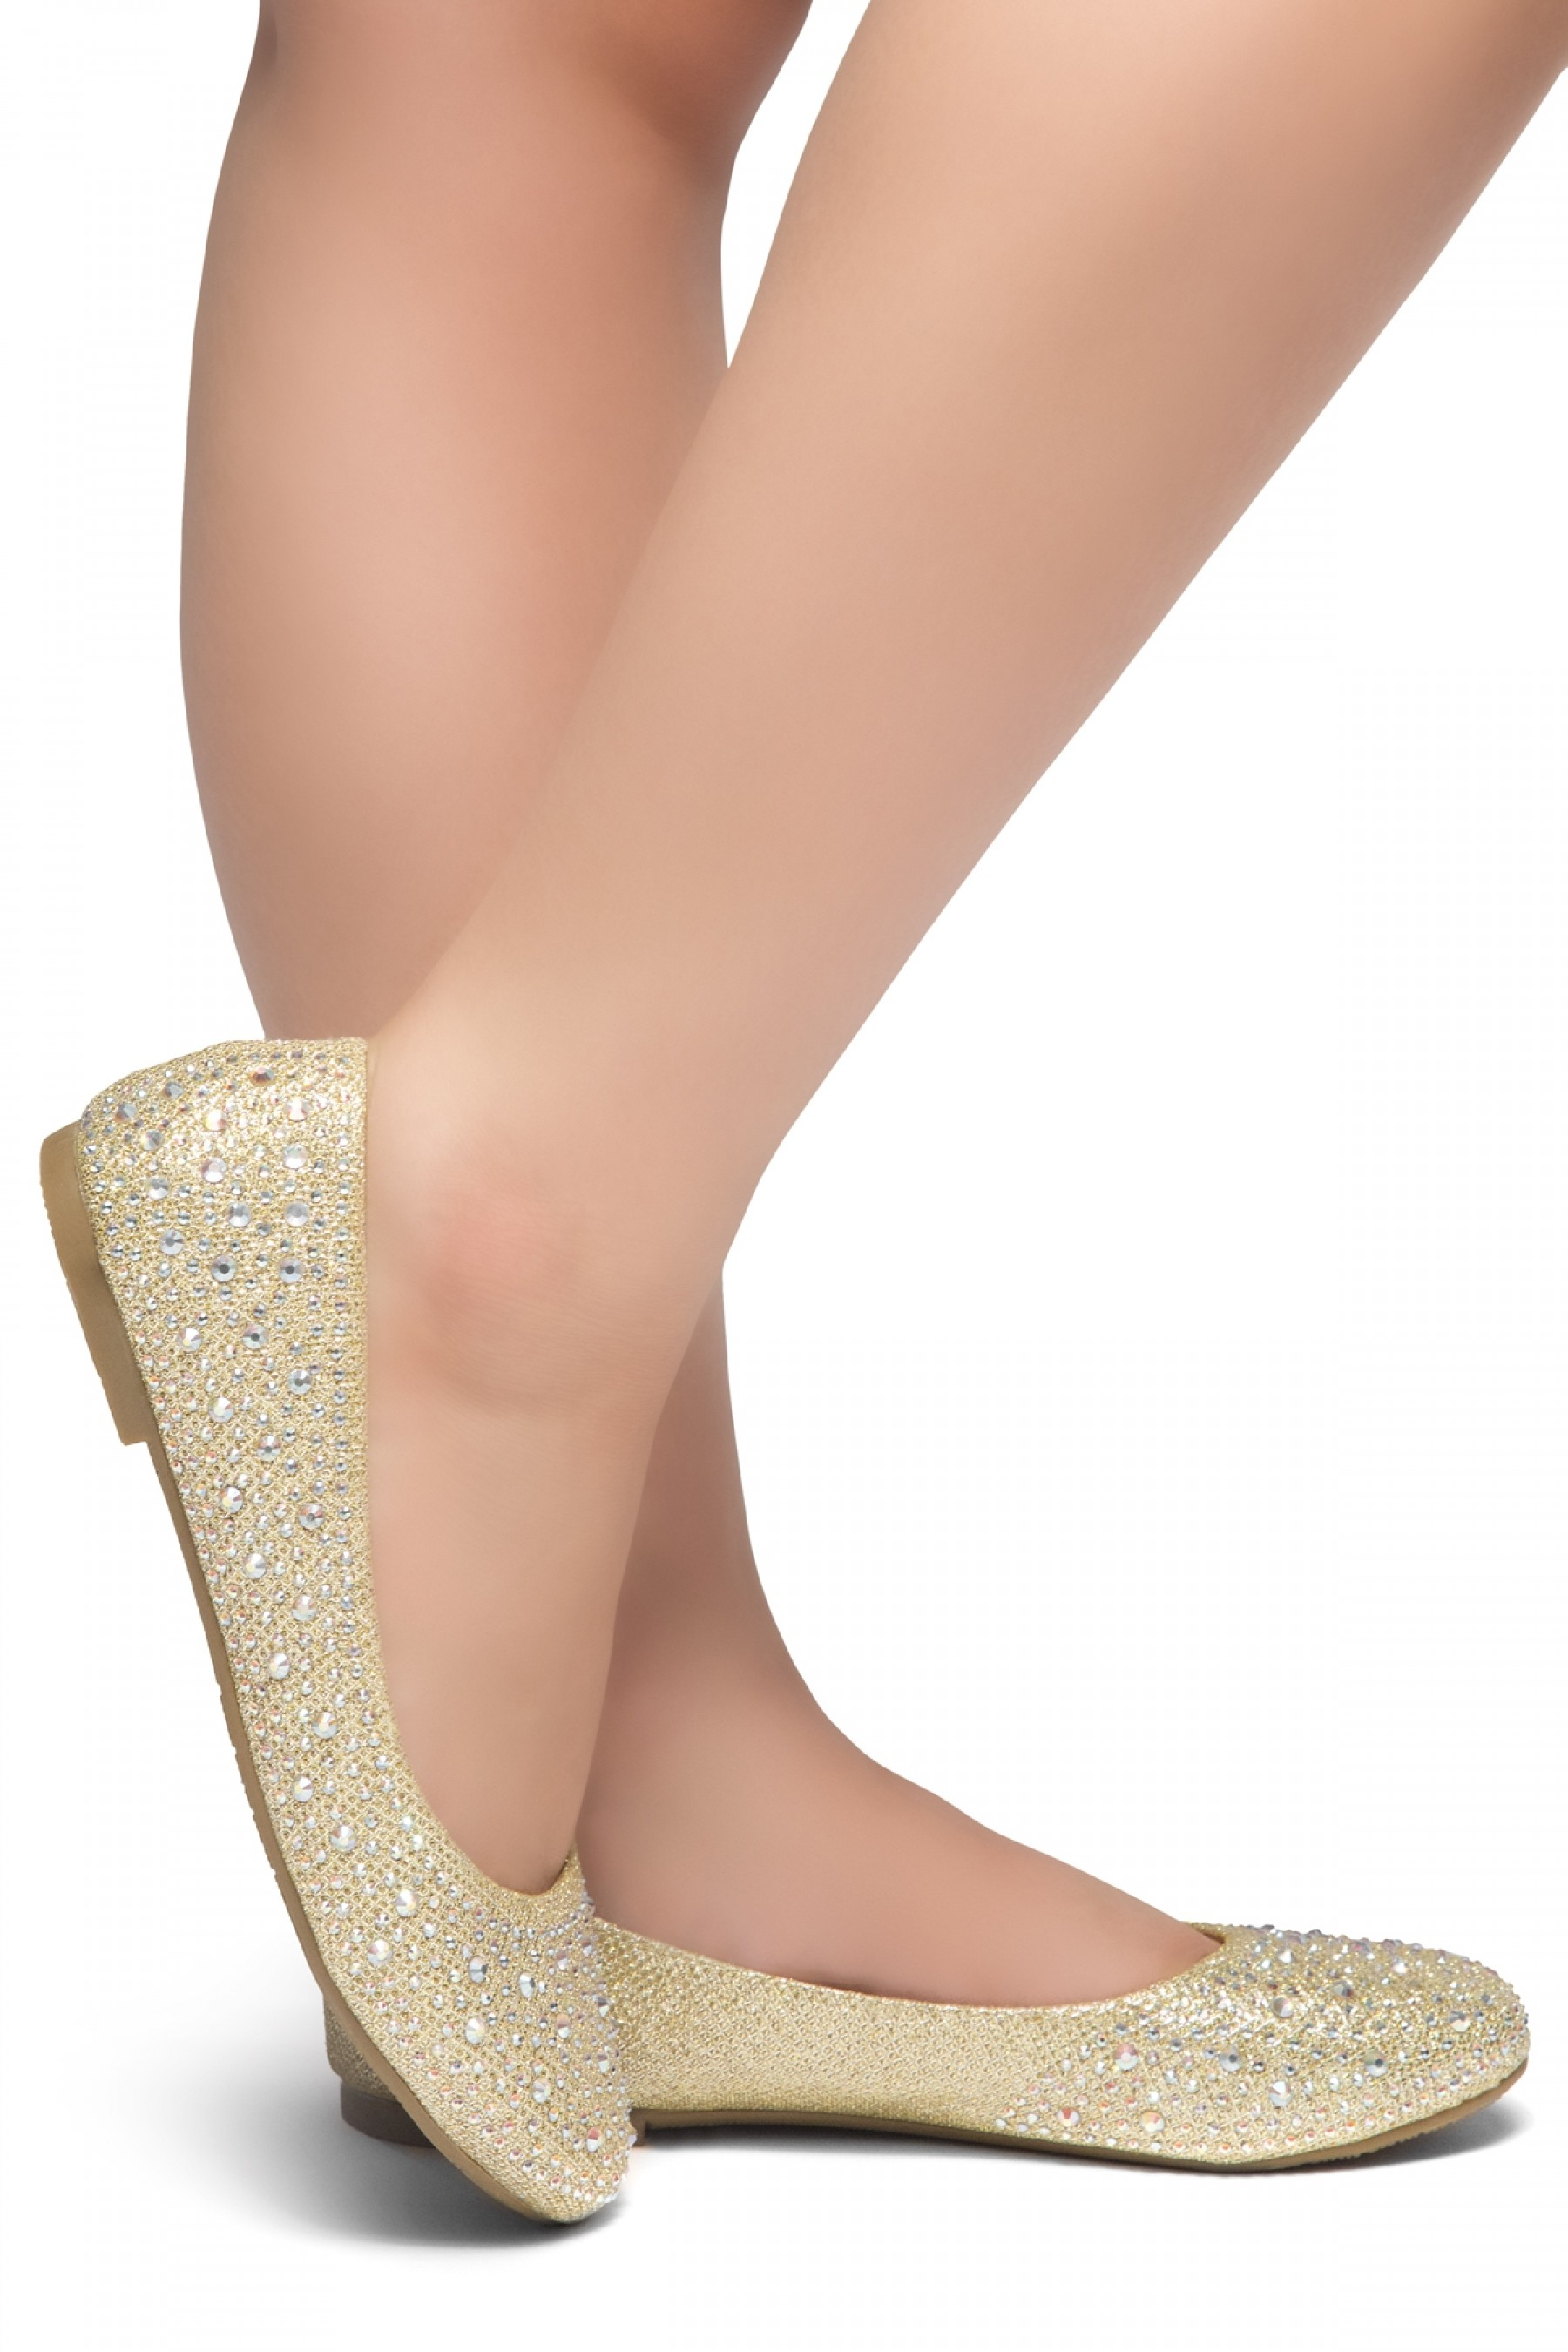 HerStyle SOLE-SHINE-Round toe, jeweled embellishments flats (Gold)